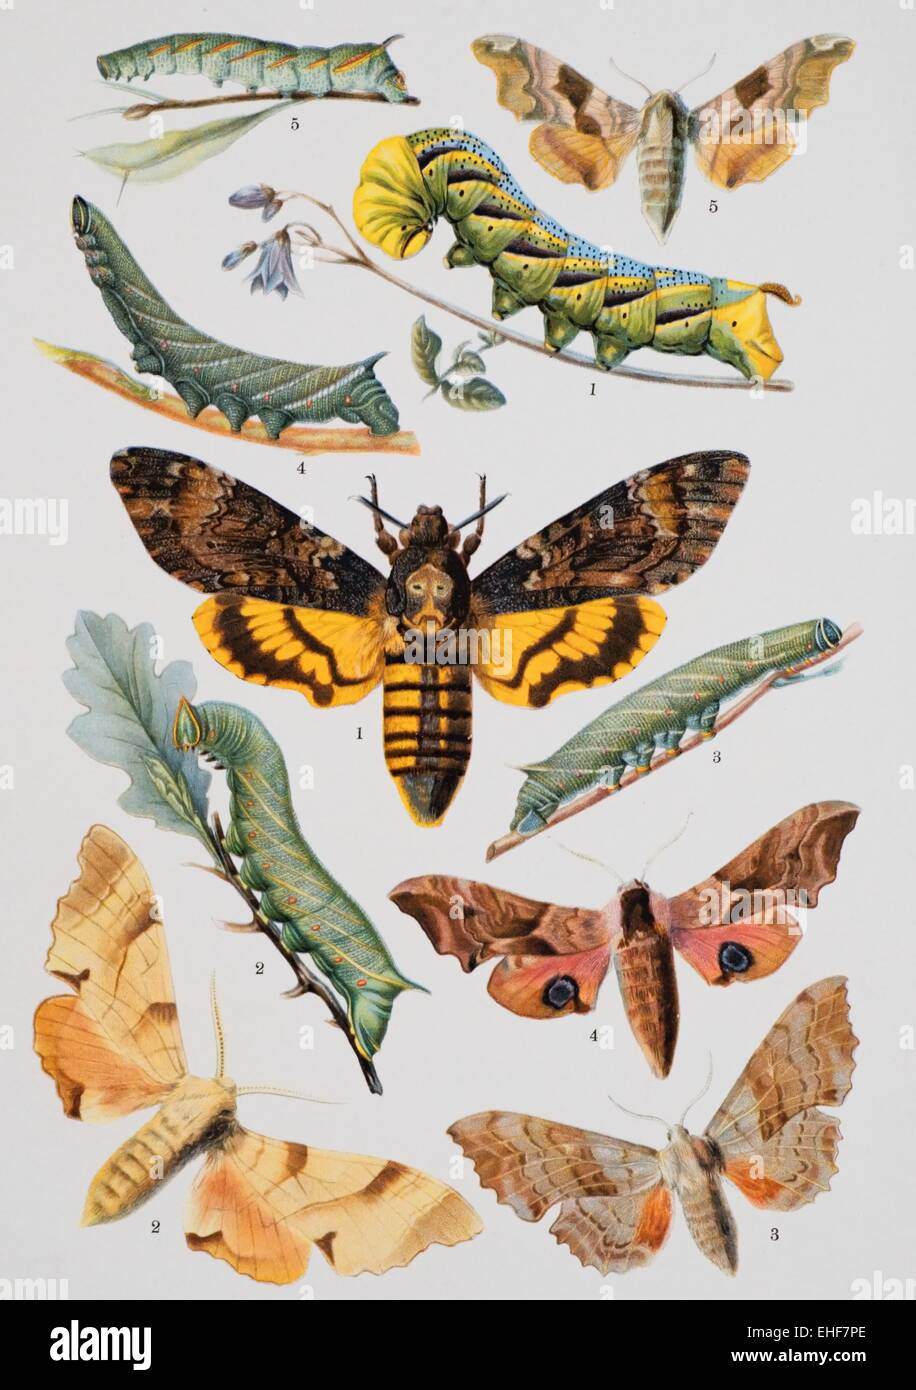 Vintage scientific illustration of butterflies and their caterpillars. Stock Photo